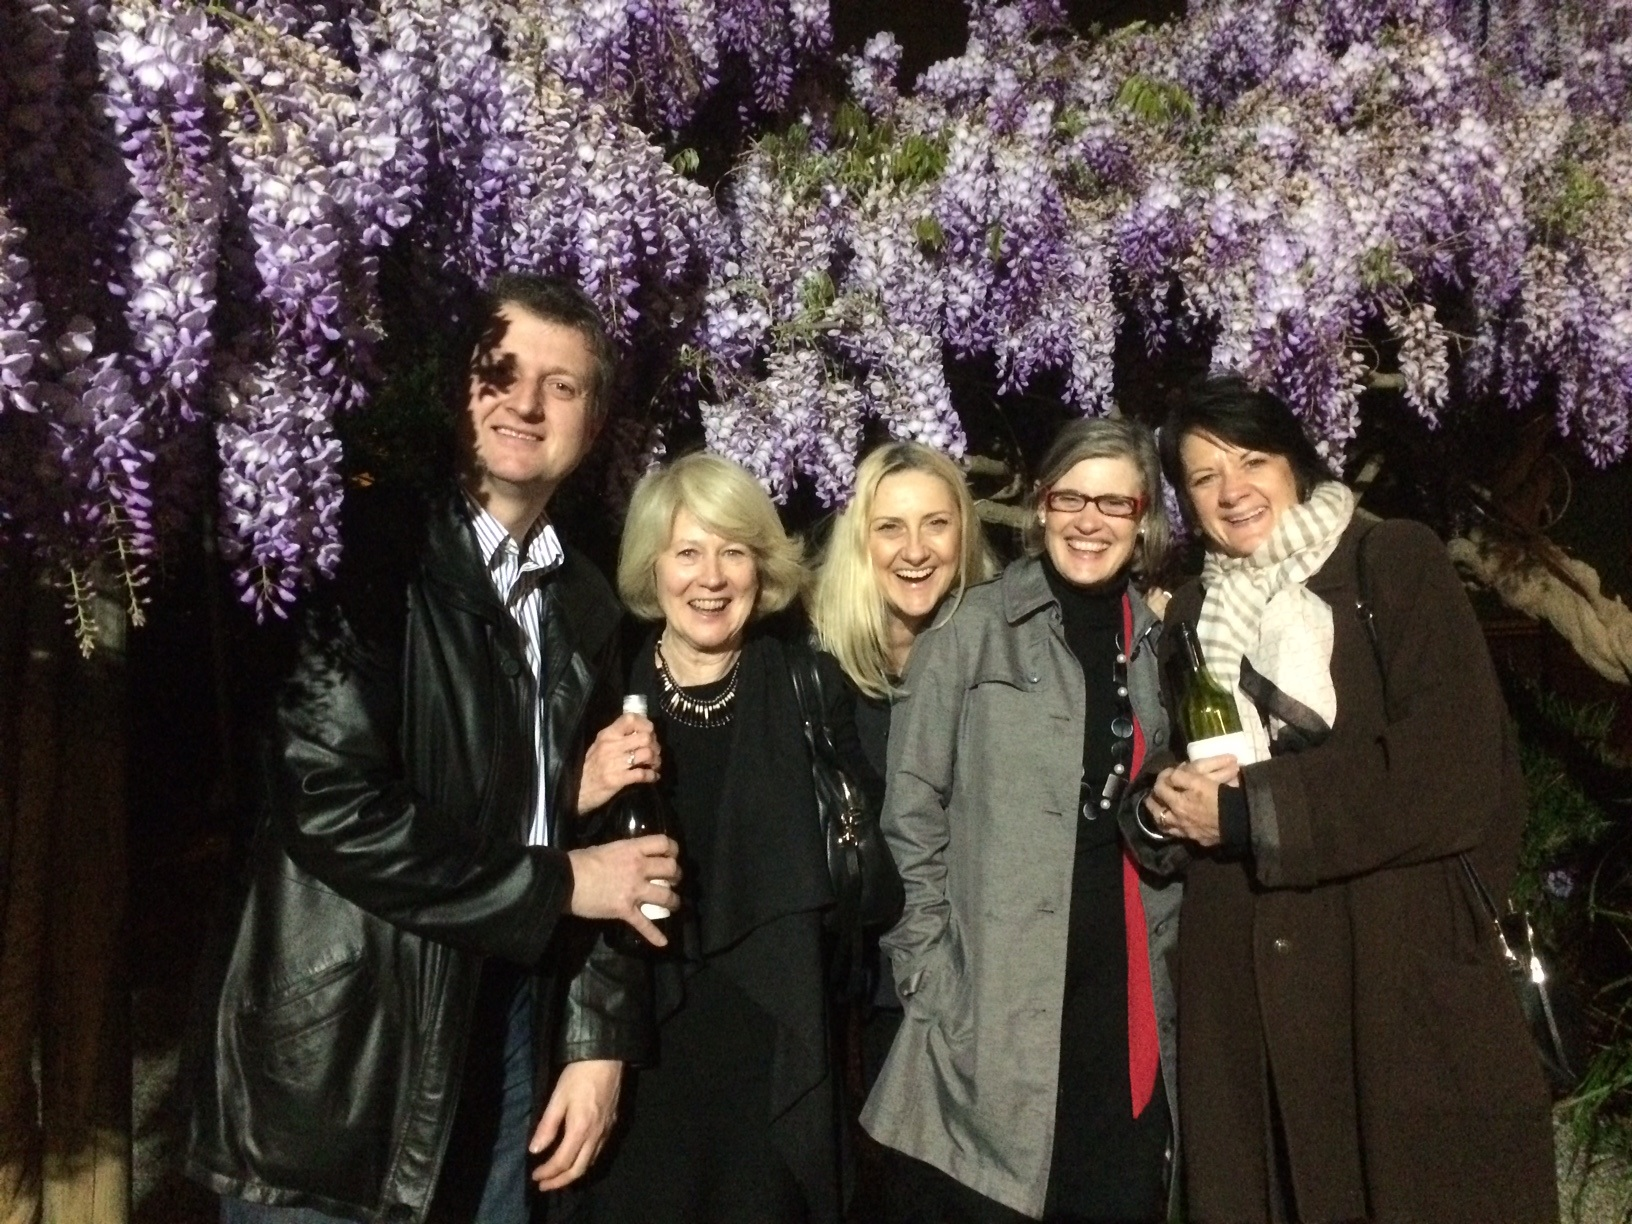 David, Elaine, Janet and friends being eaten alive by the wisteria on the recent HTC Film and Pizza night.